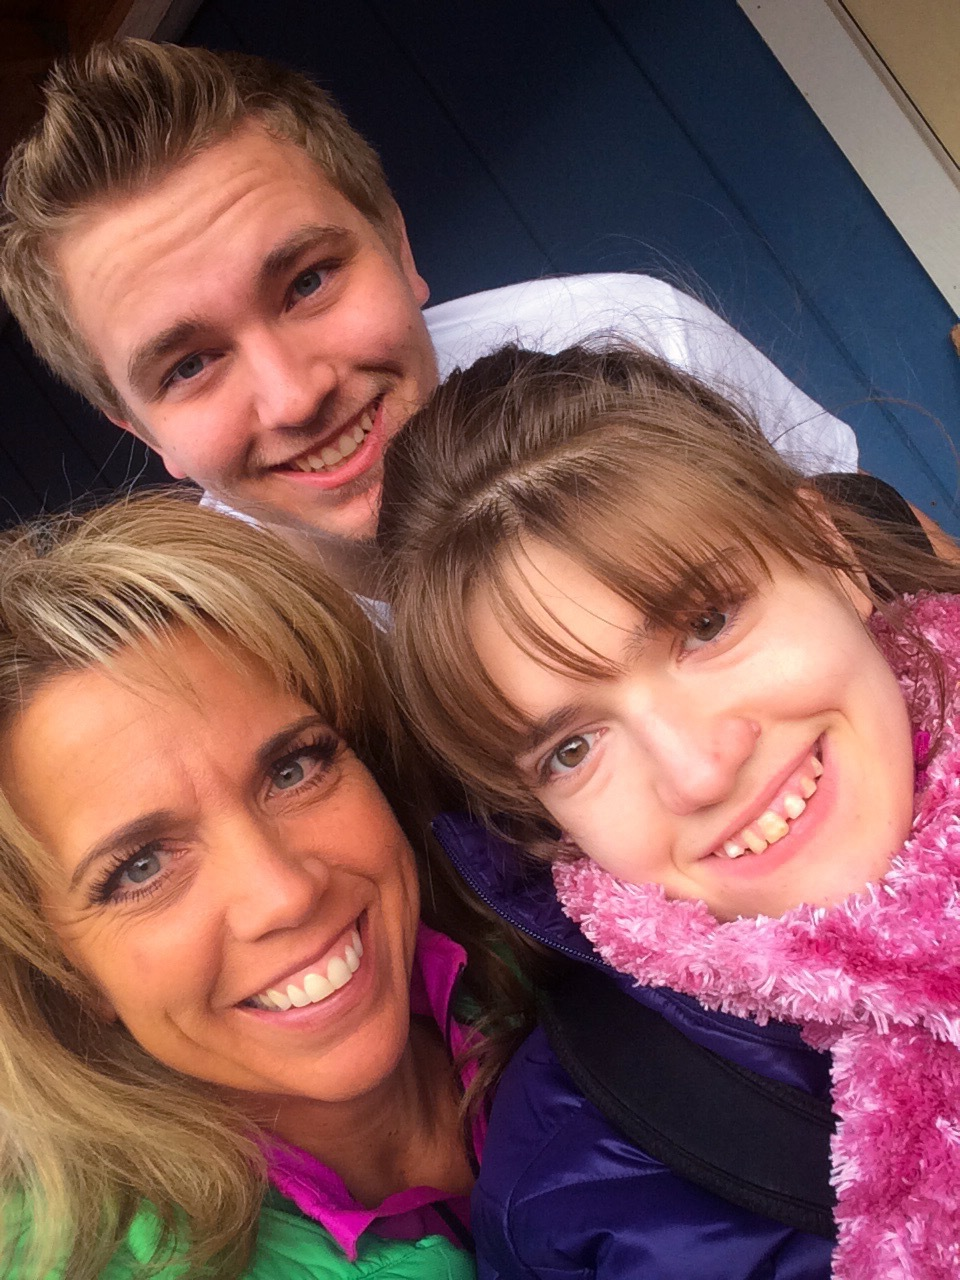 People fighting aicardi syndrome in Kalispell, MT